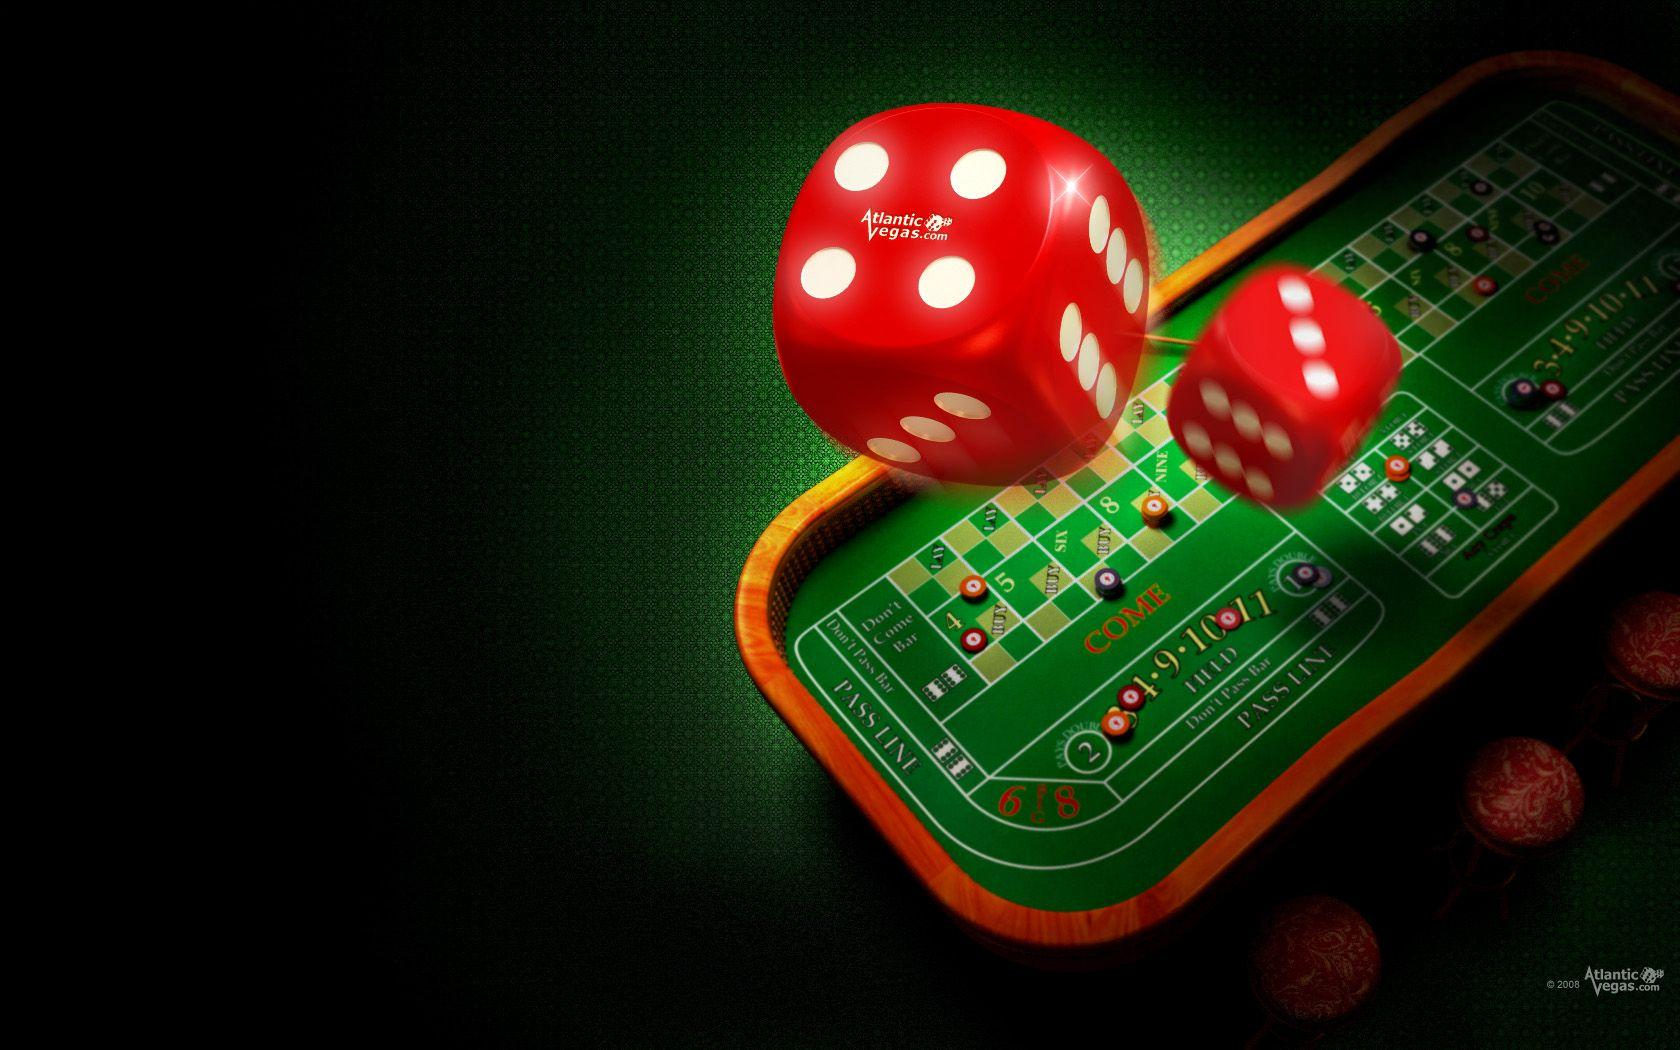 Wondering to Find Out How To Make Your Gambling Casino Rock?